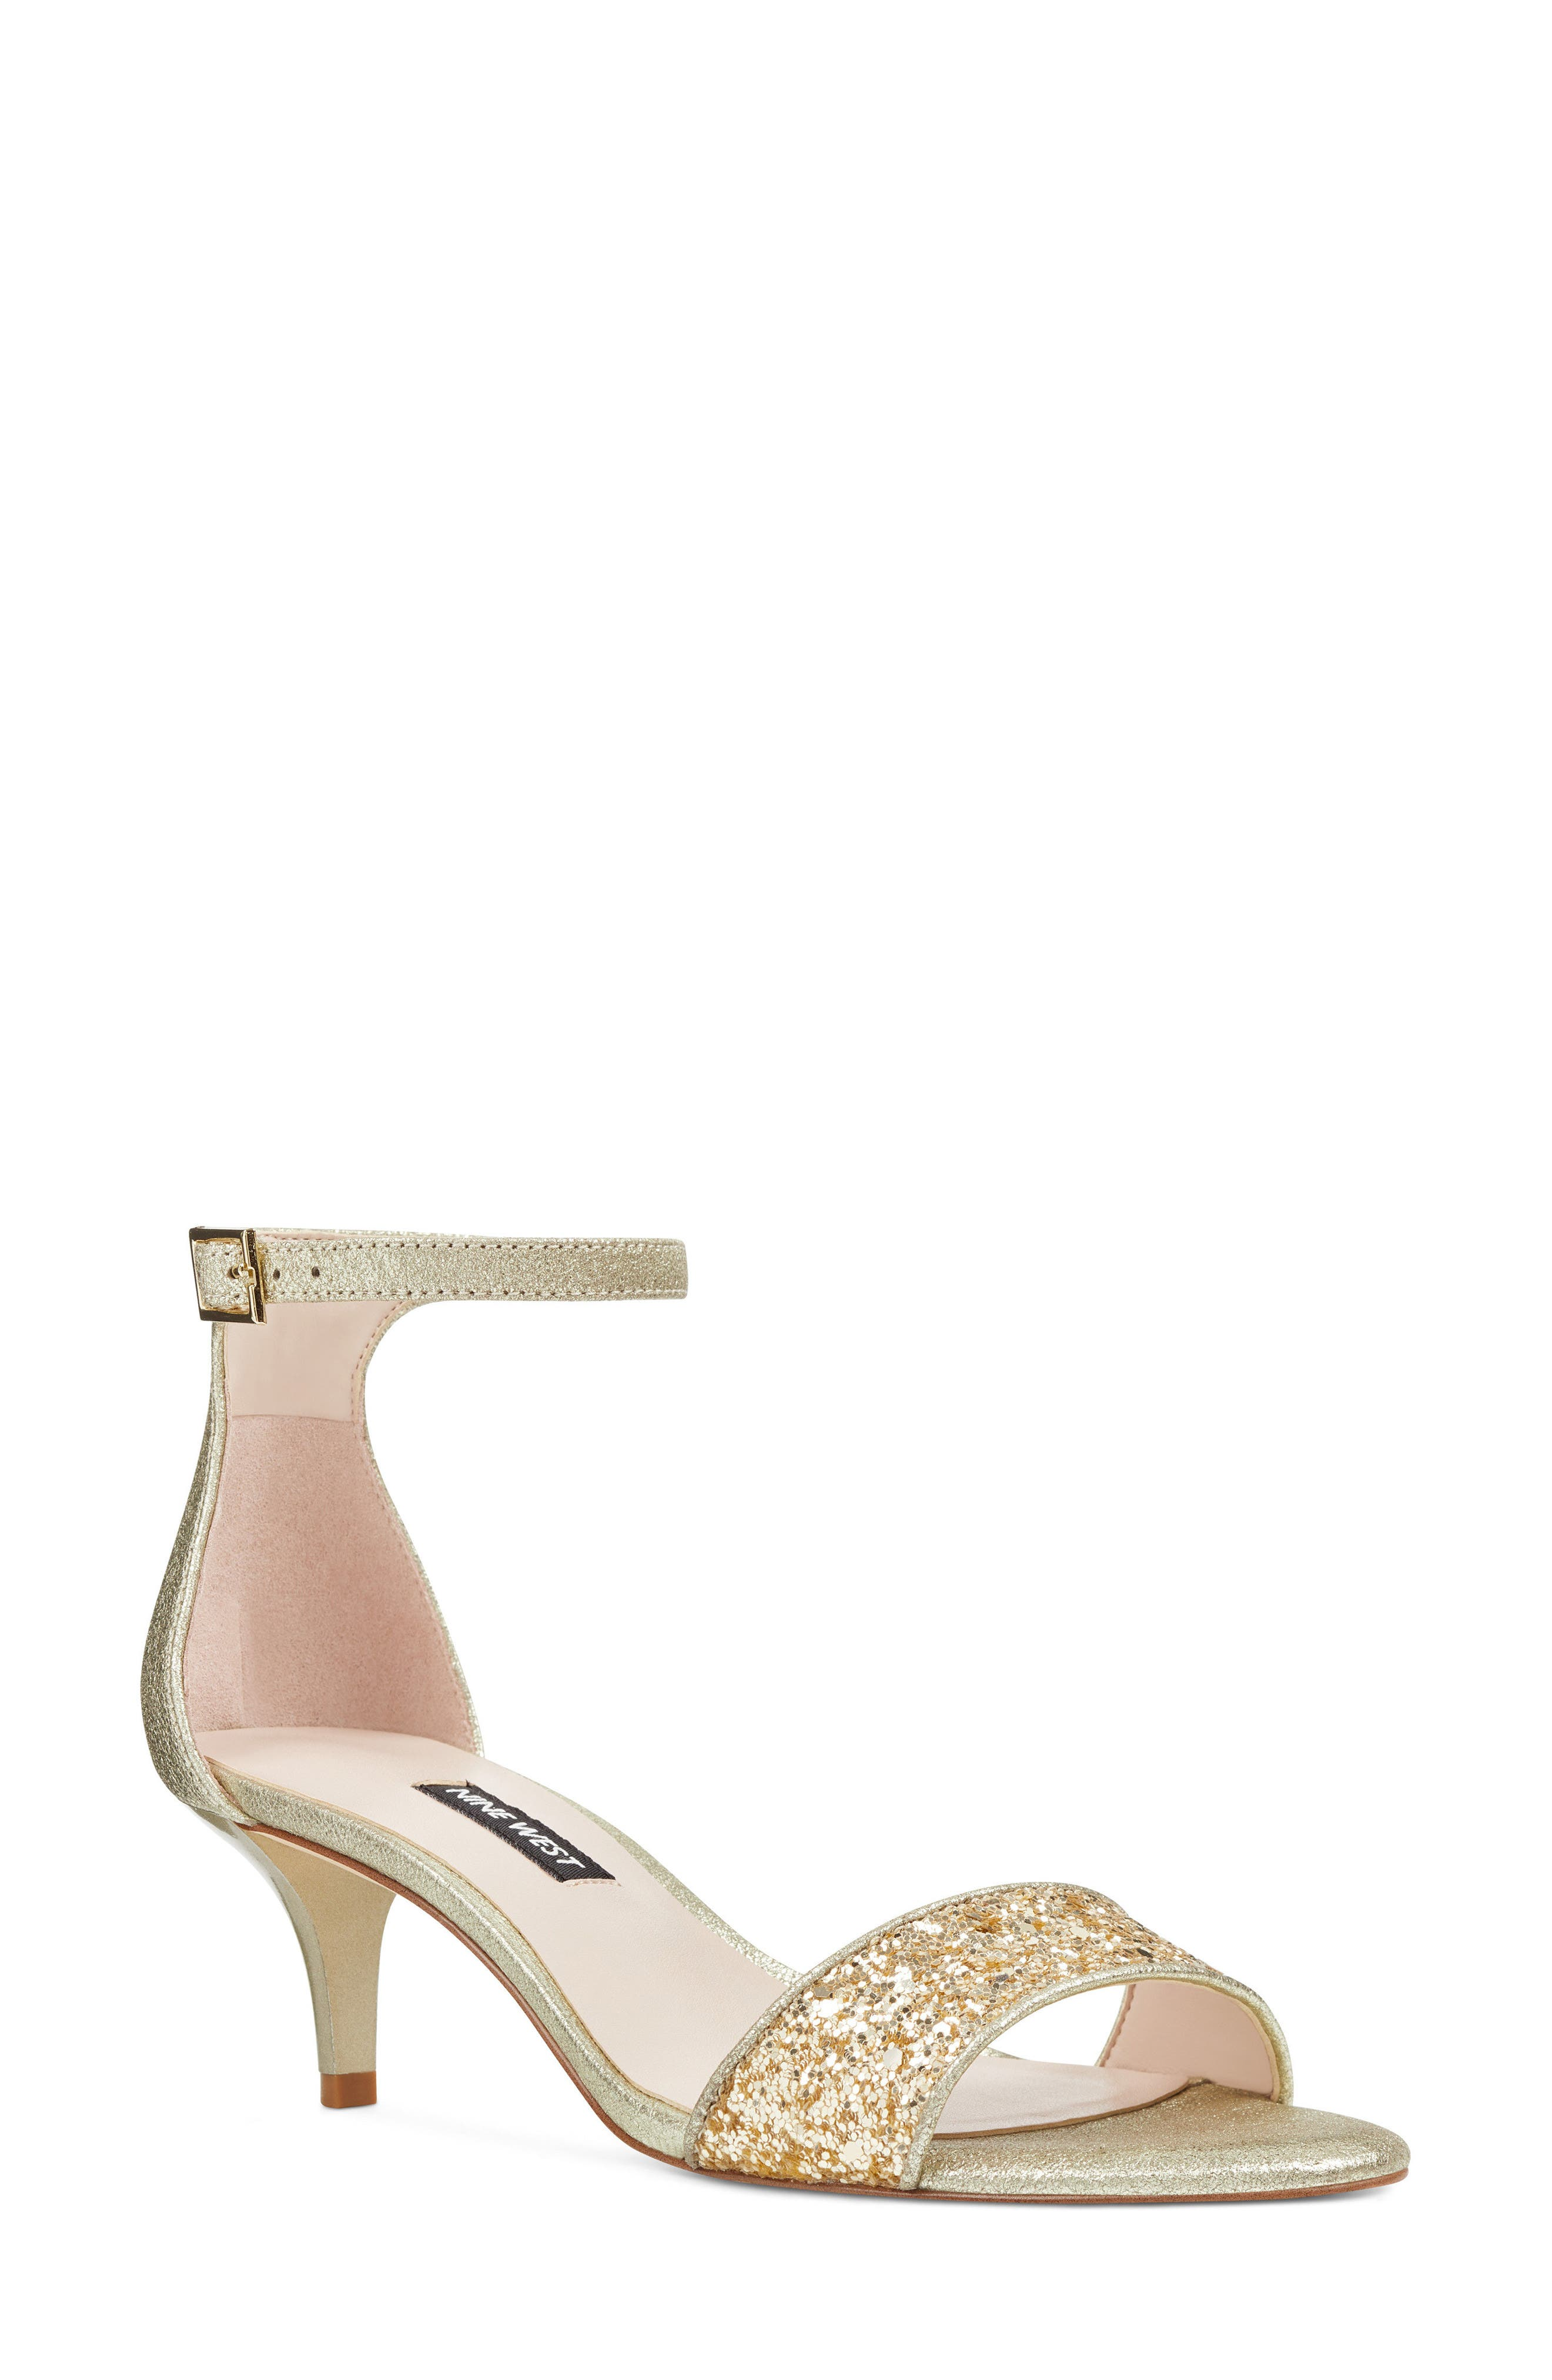 'Leisa' Ankle Strap Sandal,                         Main,                         color, Light Gold Fabric